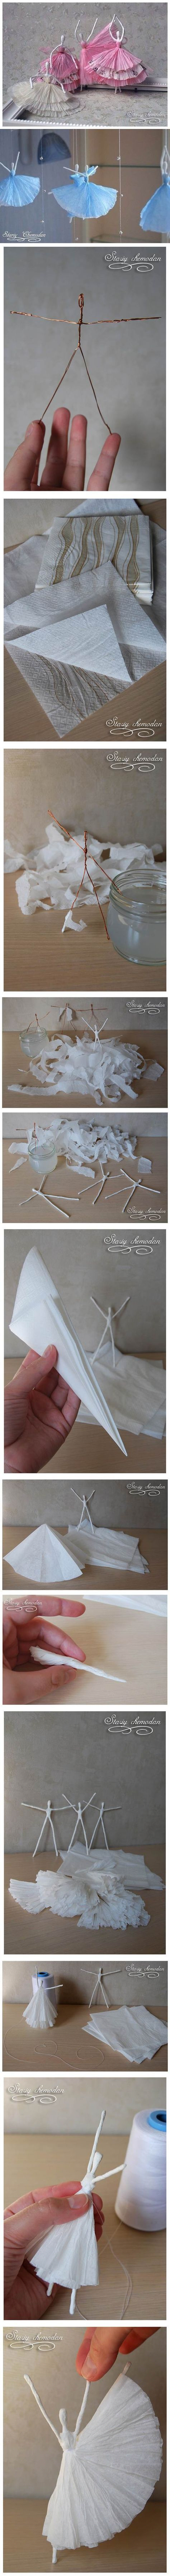 DIY idée déco chambre de fille - Crafts for Girls, napkin paper ballerina - So simple and crafty! Making these today with my 6 year old daugther!